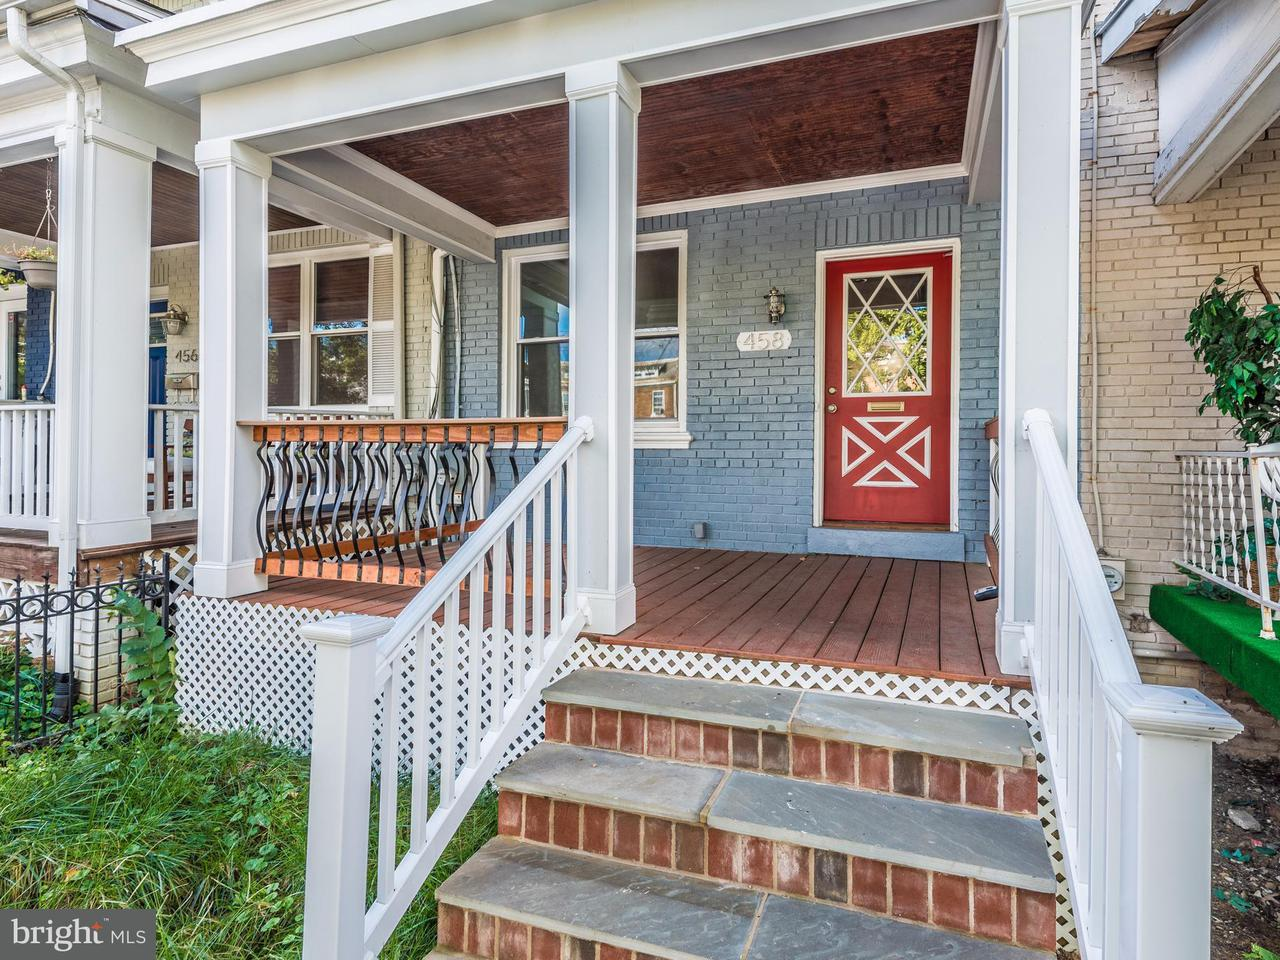 Additional photo for property listing at 458 Delafield Pl NW  Washington, District Of Columbia 20011 United States